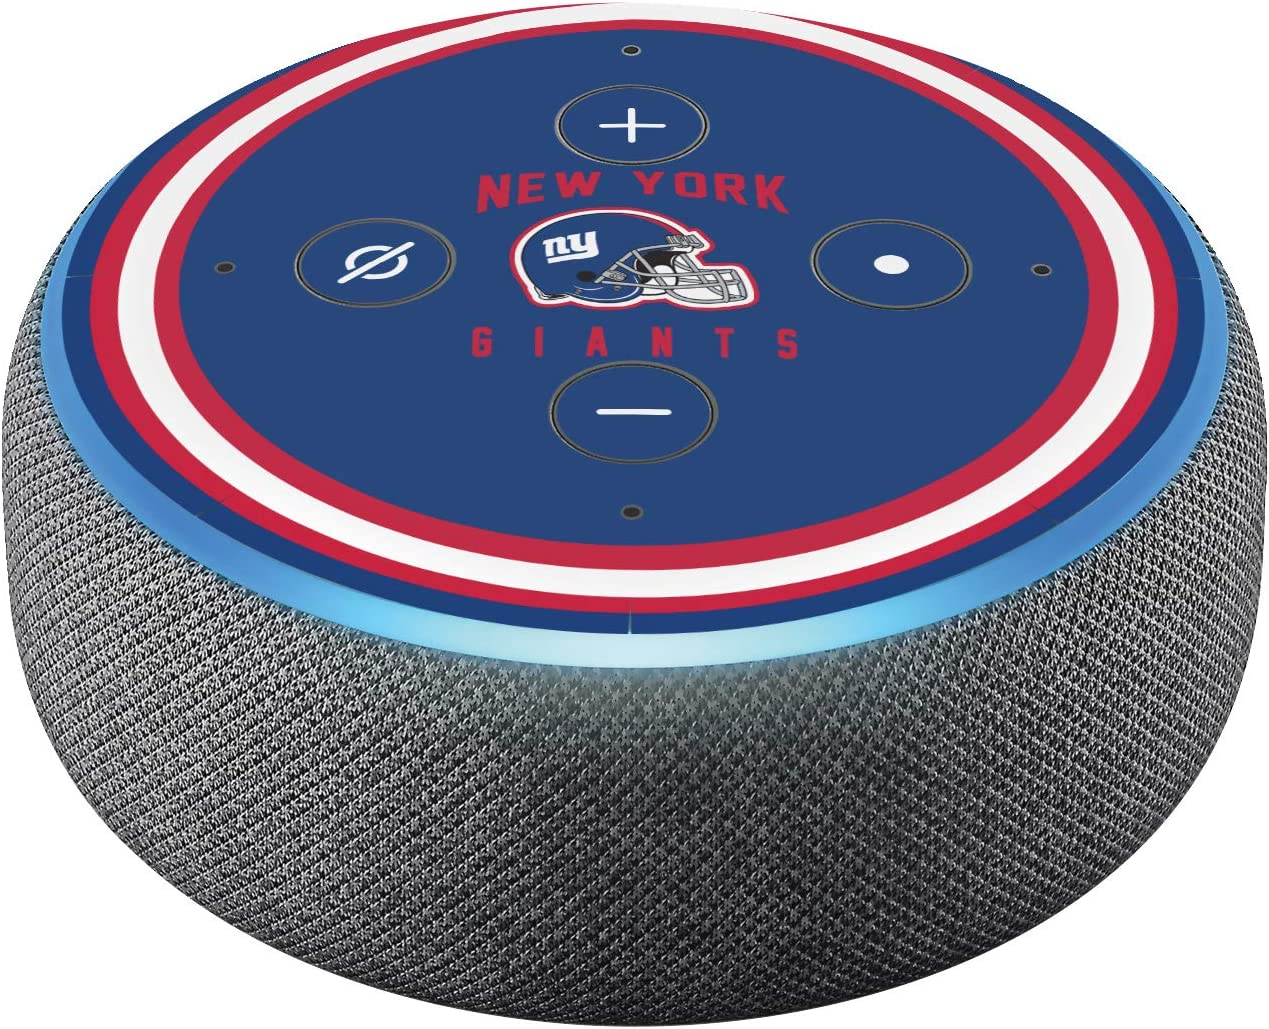 Head Case Designs Officially Licensed NFL Team Colour Helmet New York Giants Matte Vinyl Sticker Skin Decal Cover Compatible with Amazon Echo Dot (3rd Gen)